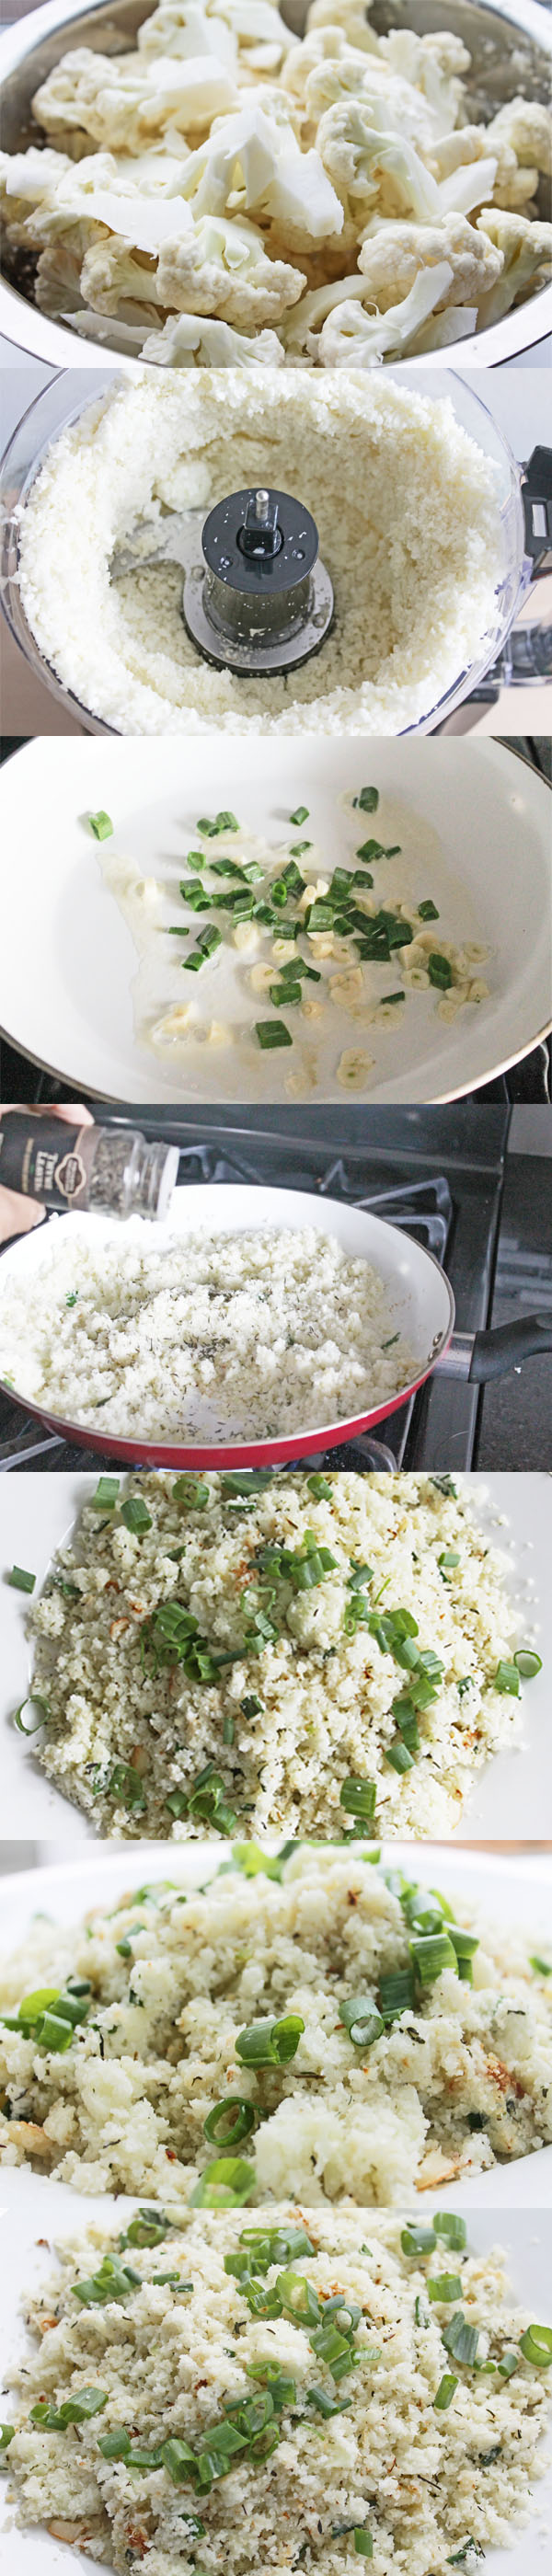 auliflower rice recipe for clean eating diet plan